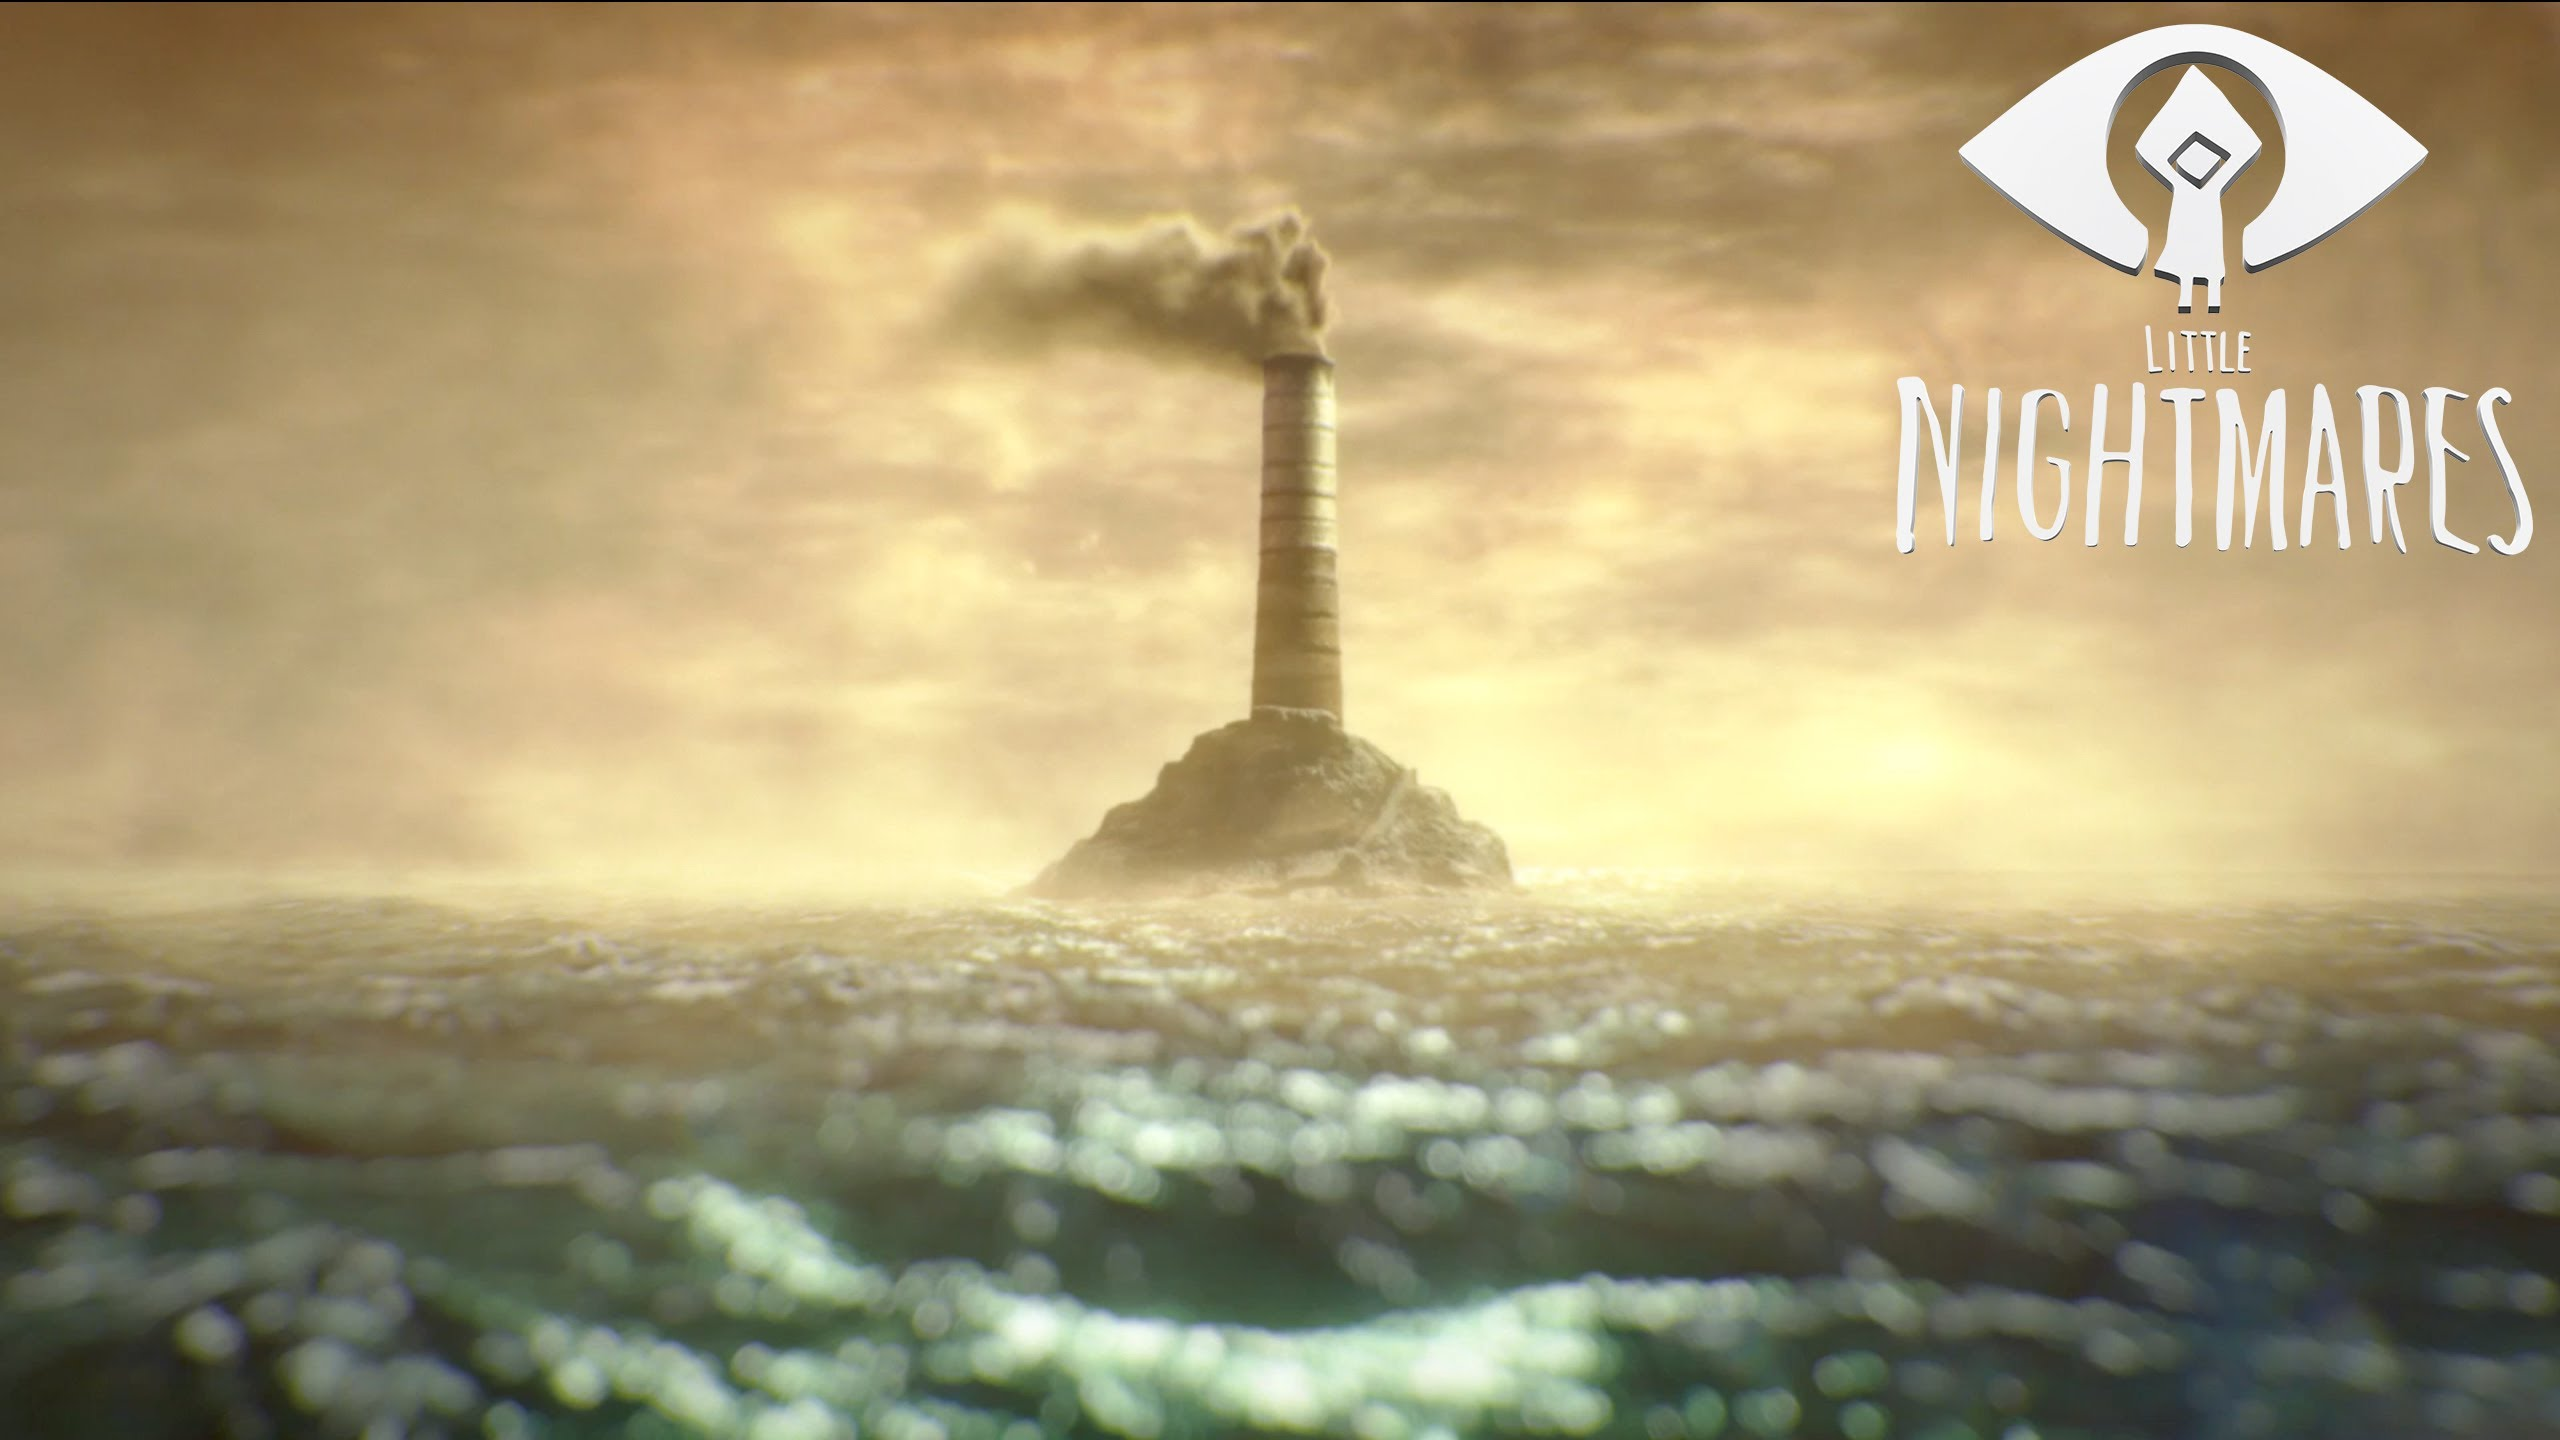 Bandai Namco Officially Announces Little Nightmares By ...